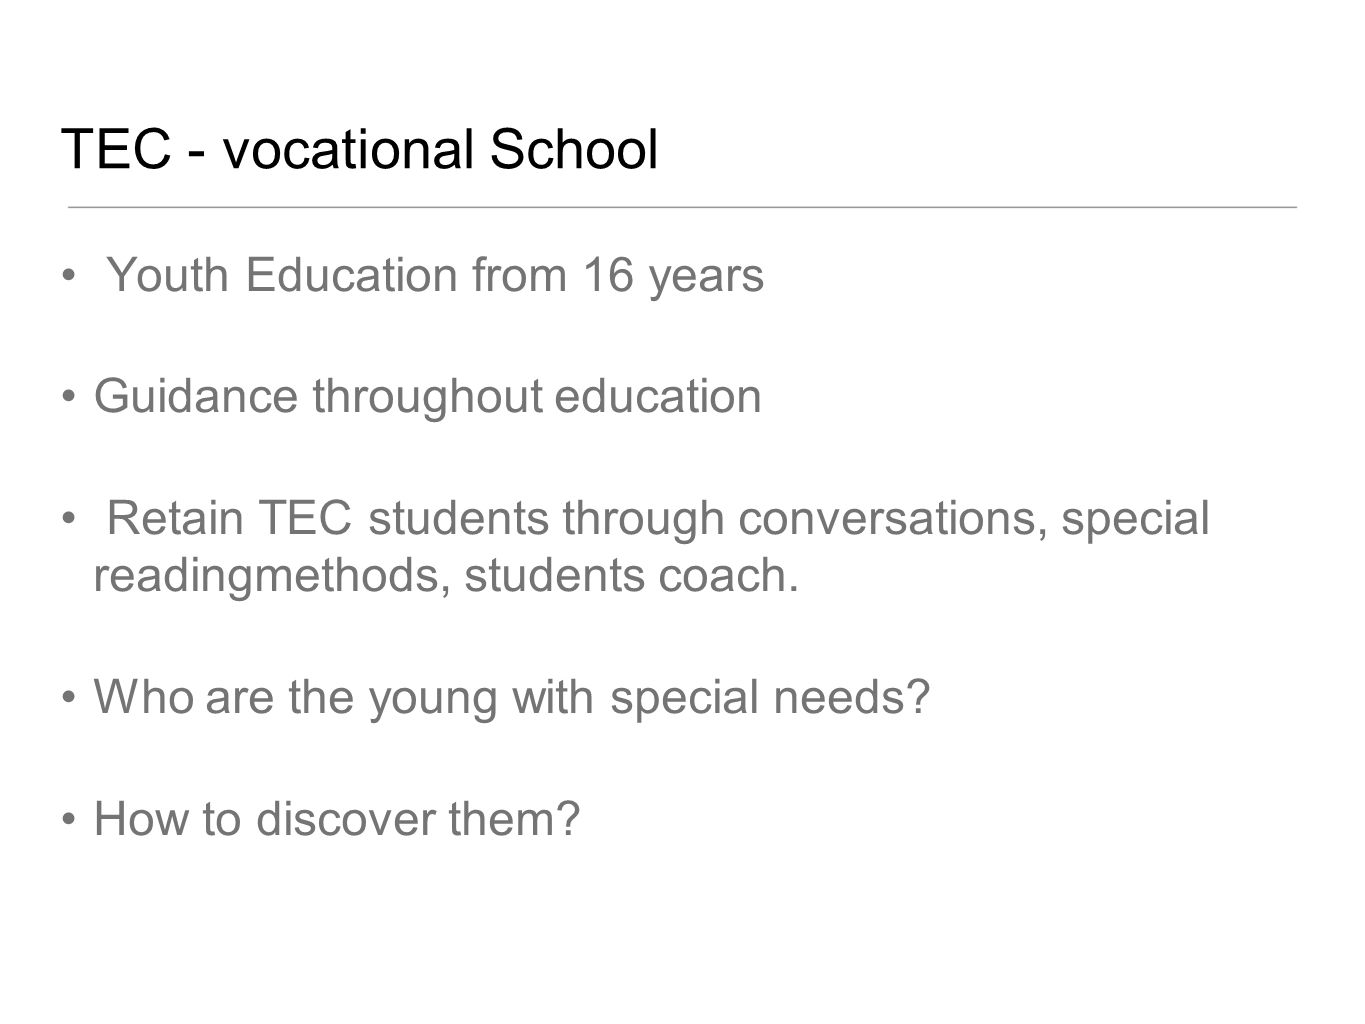 TEC - vocational School Youth Education from 16 years Guidance throughout education Retain TEC students through conversations, special readingmethods, students coach.